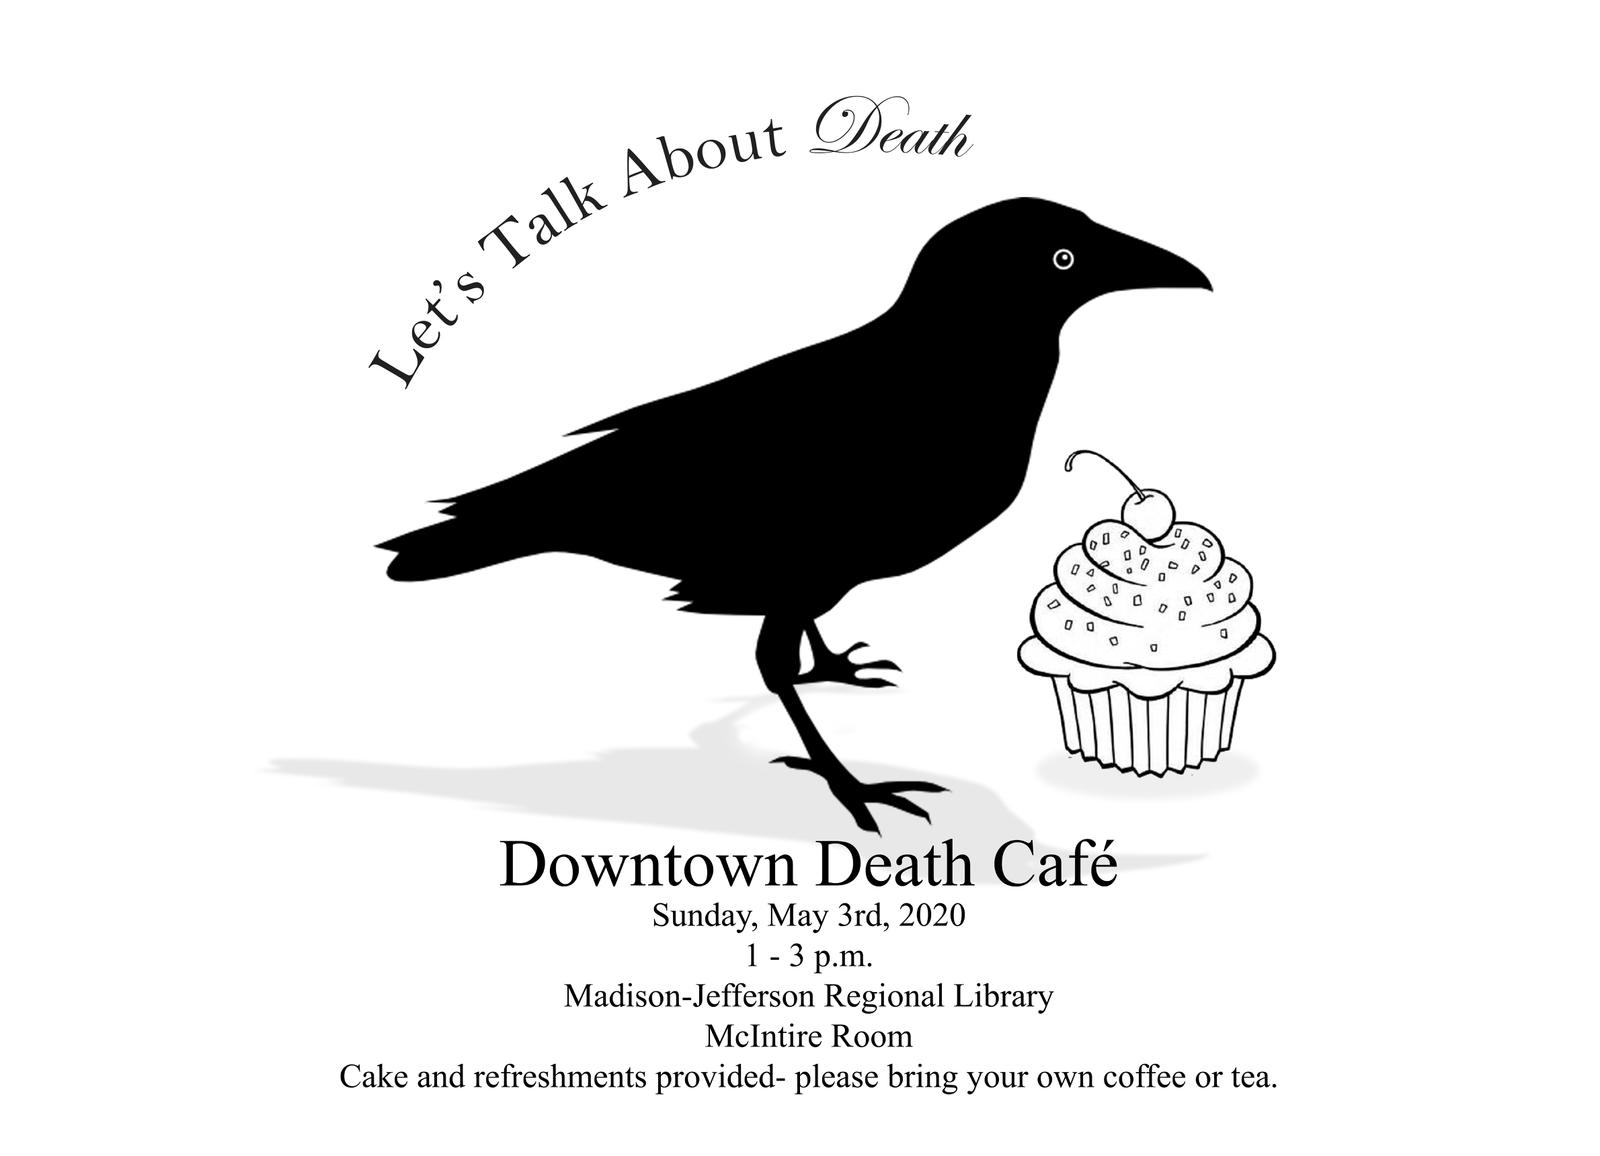 Downtown Death Cafe Charlottesville